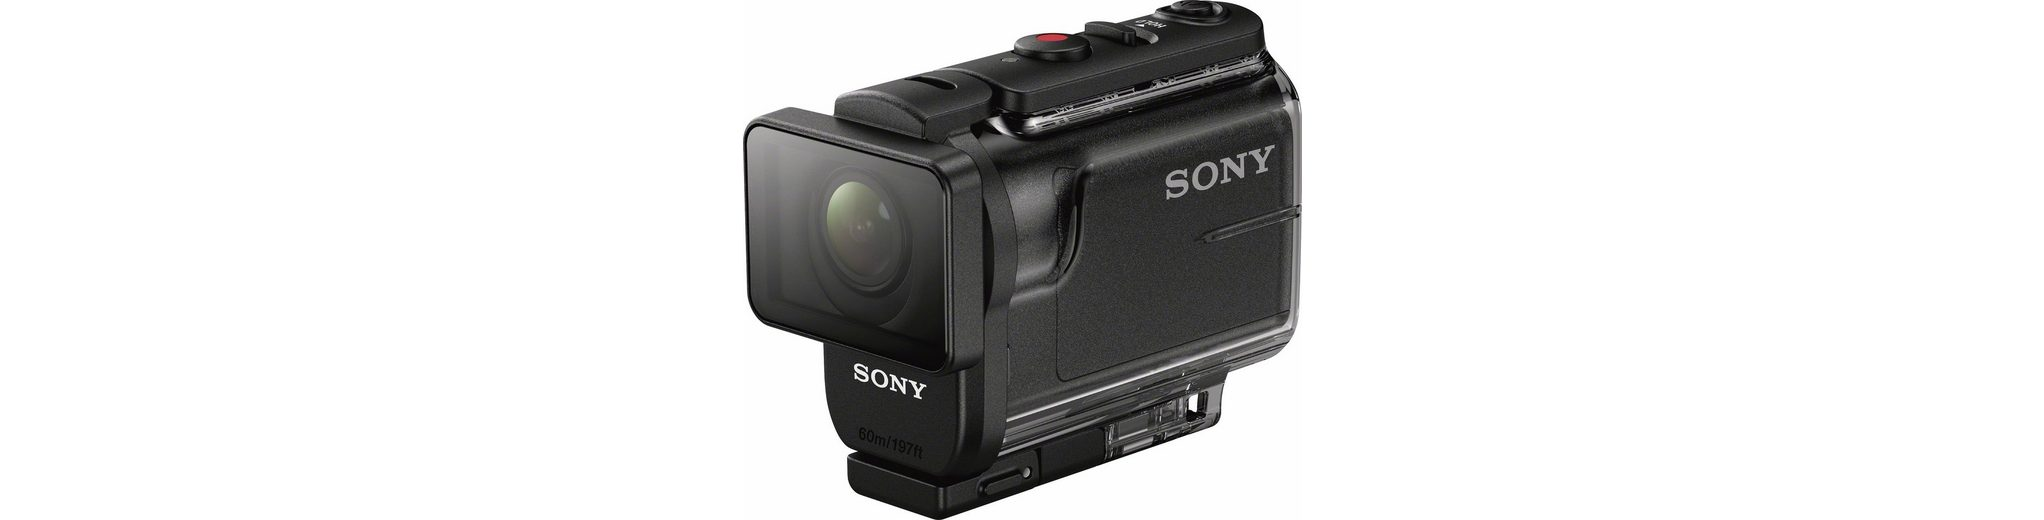 Sony HDR-AS50 1080p (Full HD) Actioncam, WLAN, Bluetooth